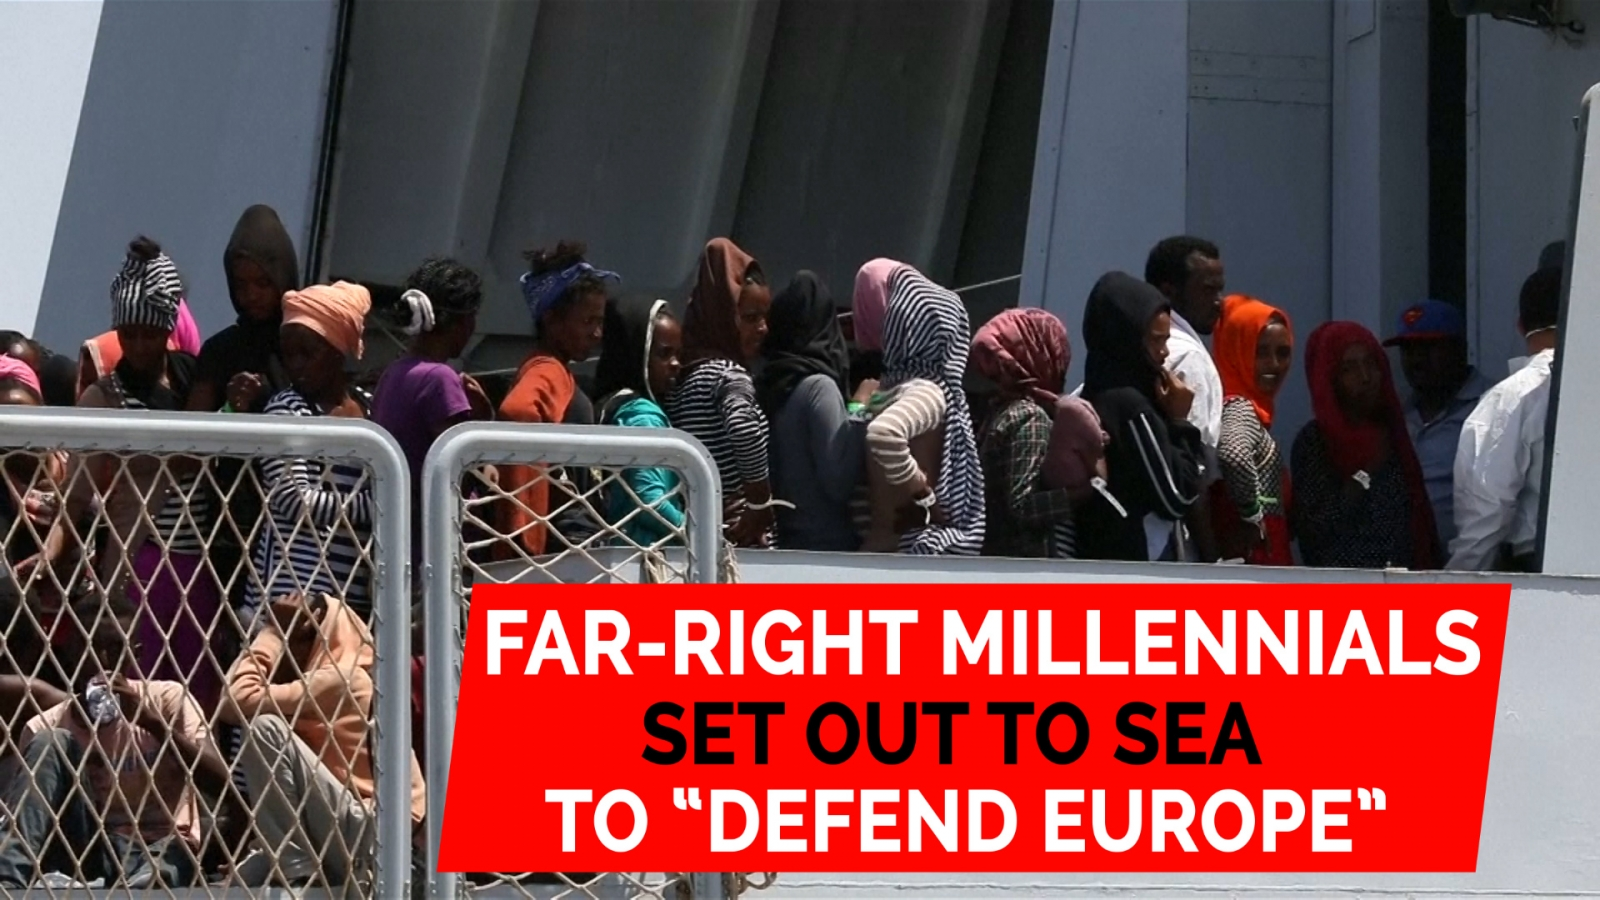 far-right-millennials-set-out-to-sea-to-defend-europe-from-migrants